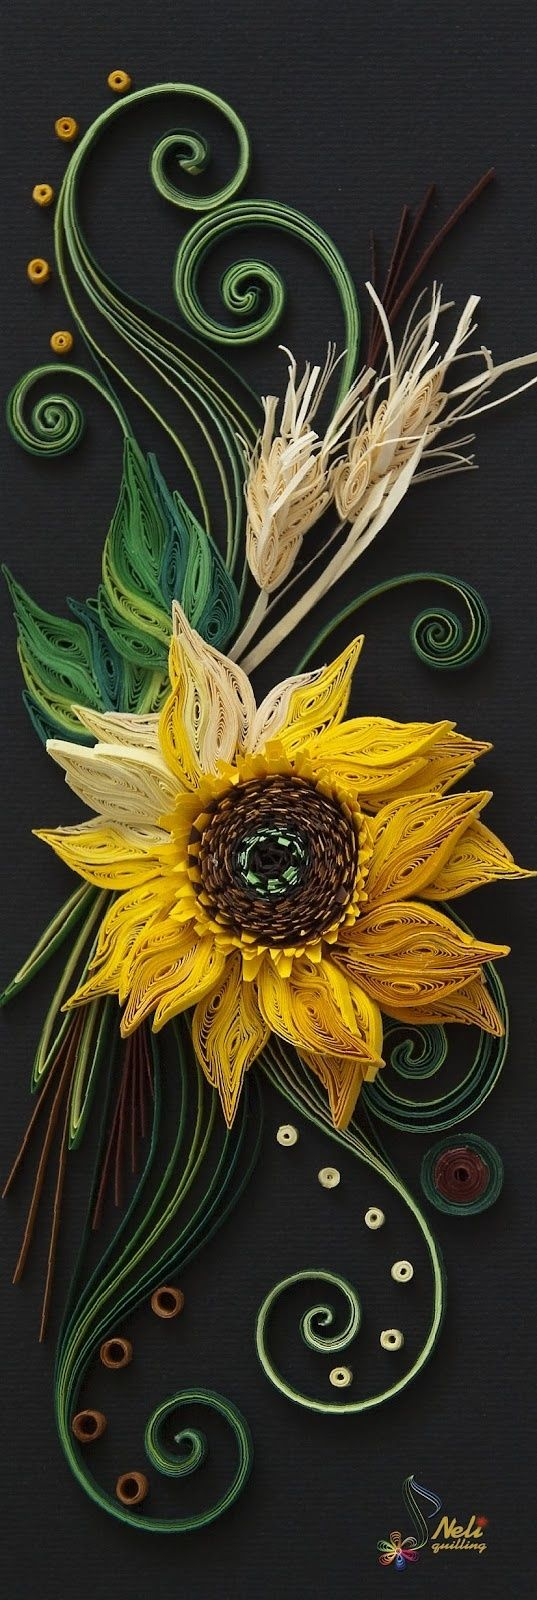 Quilling Sunflower by Ookamishoujo